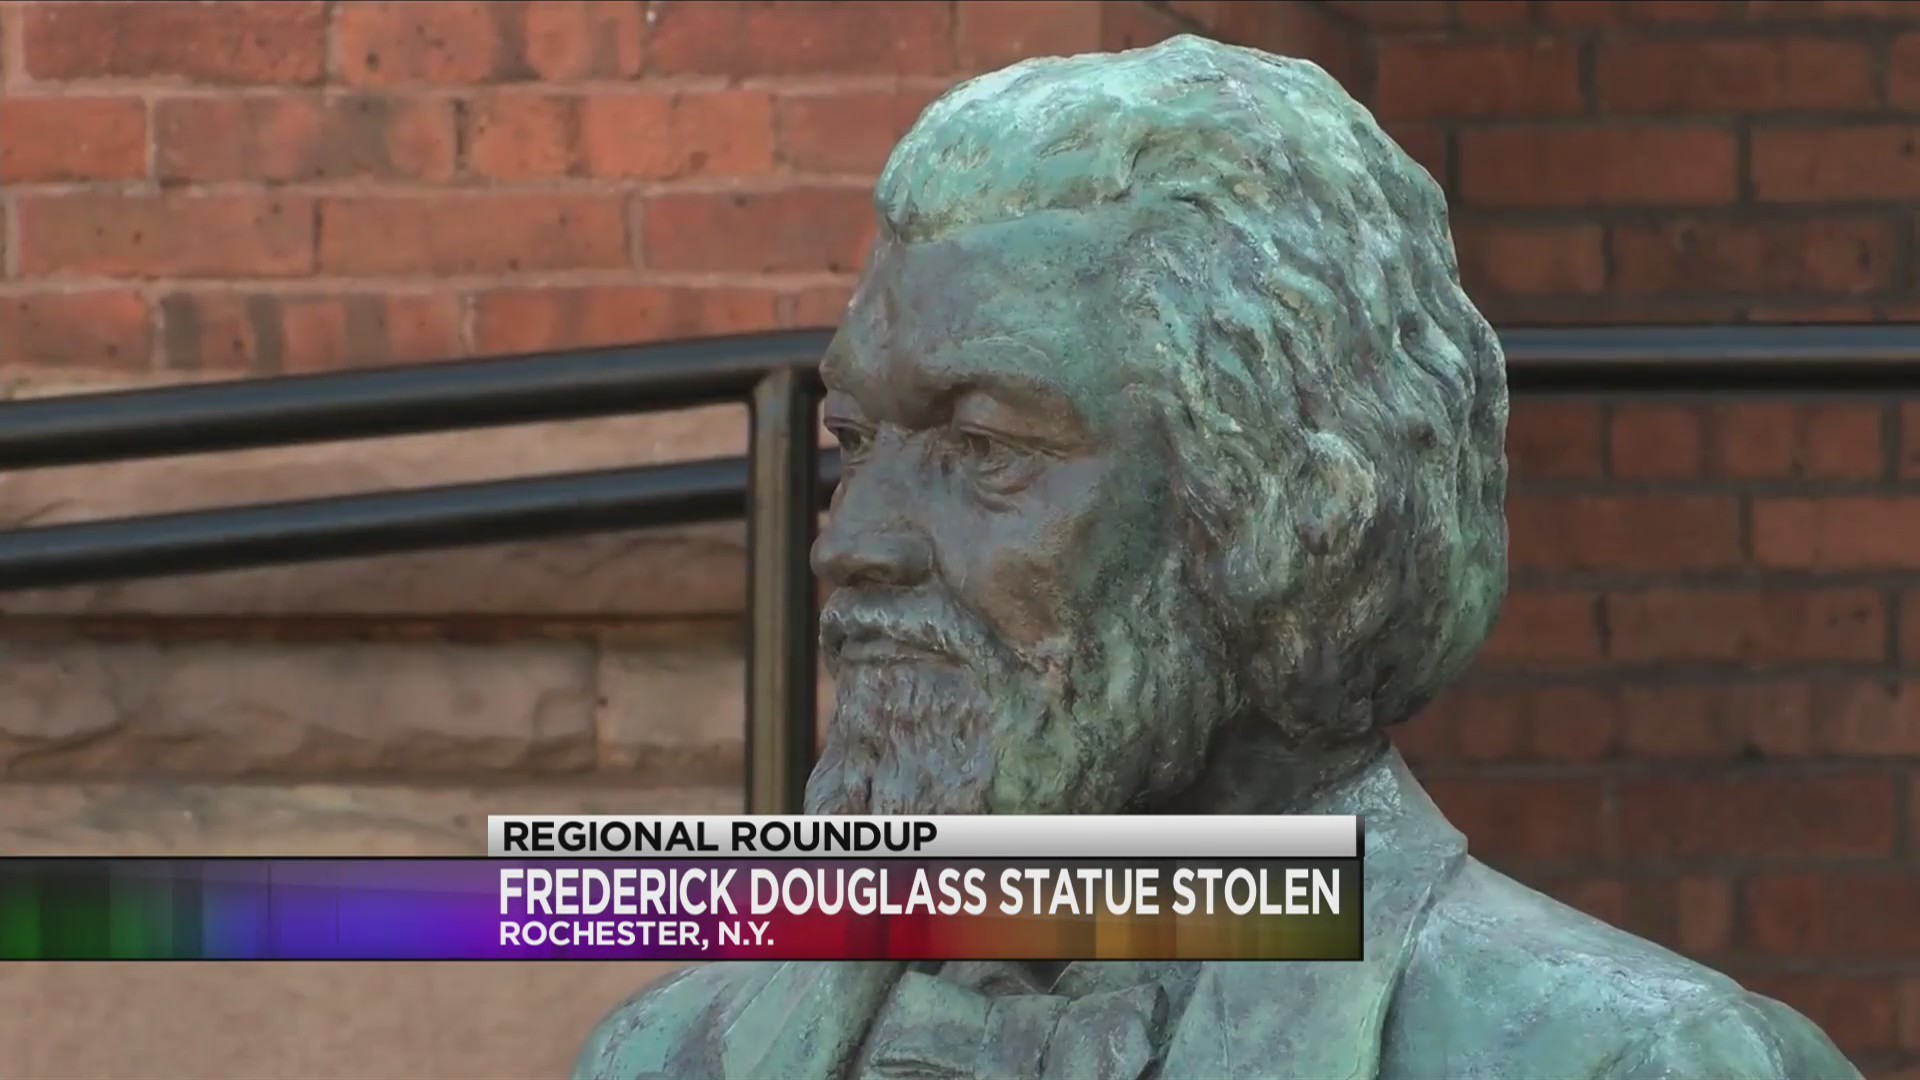 Two college students arrested for stealing Frederick Douglass statue